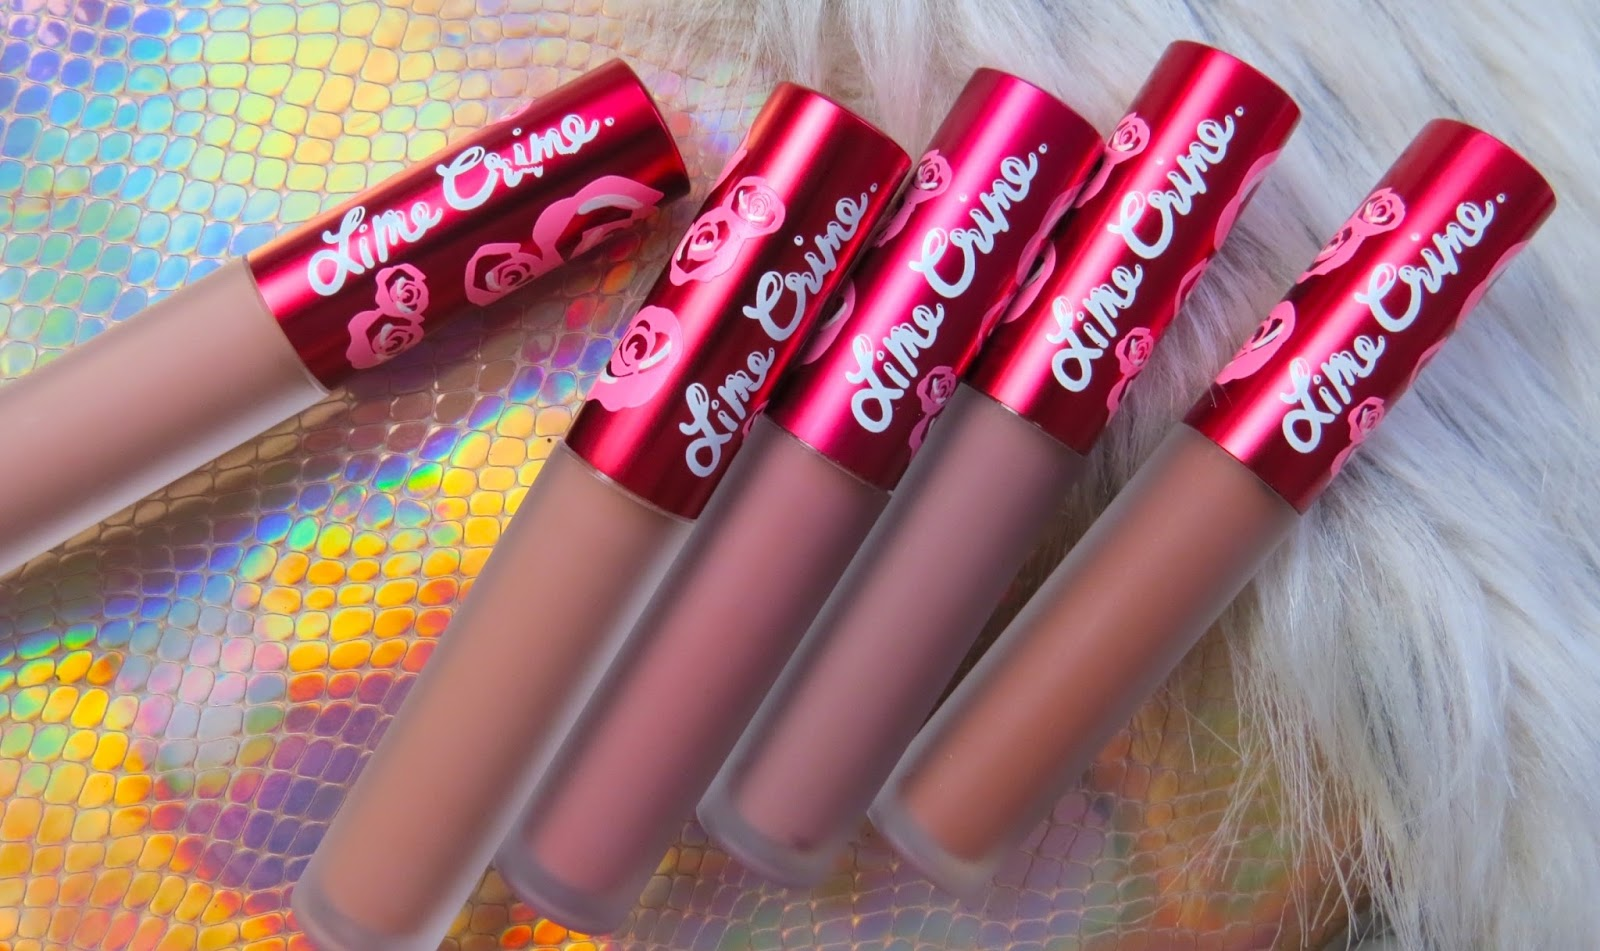 Amanda Gregory Beauty Lime Crime Girls Collection Velvetines All Shade I Also Love The Had My Name Written Al Over It